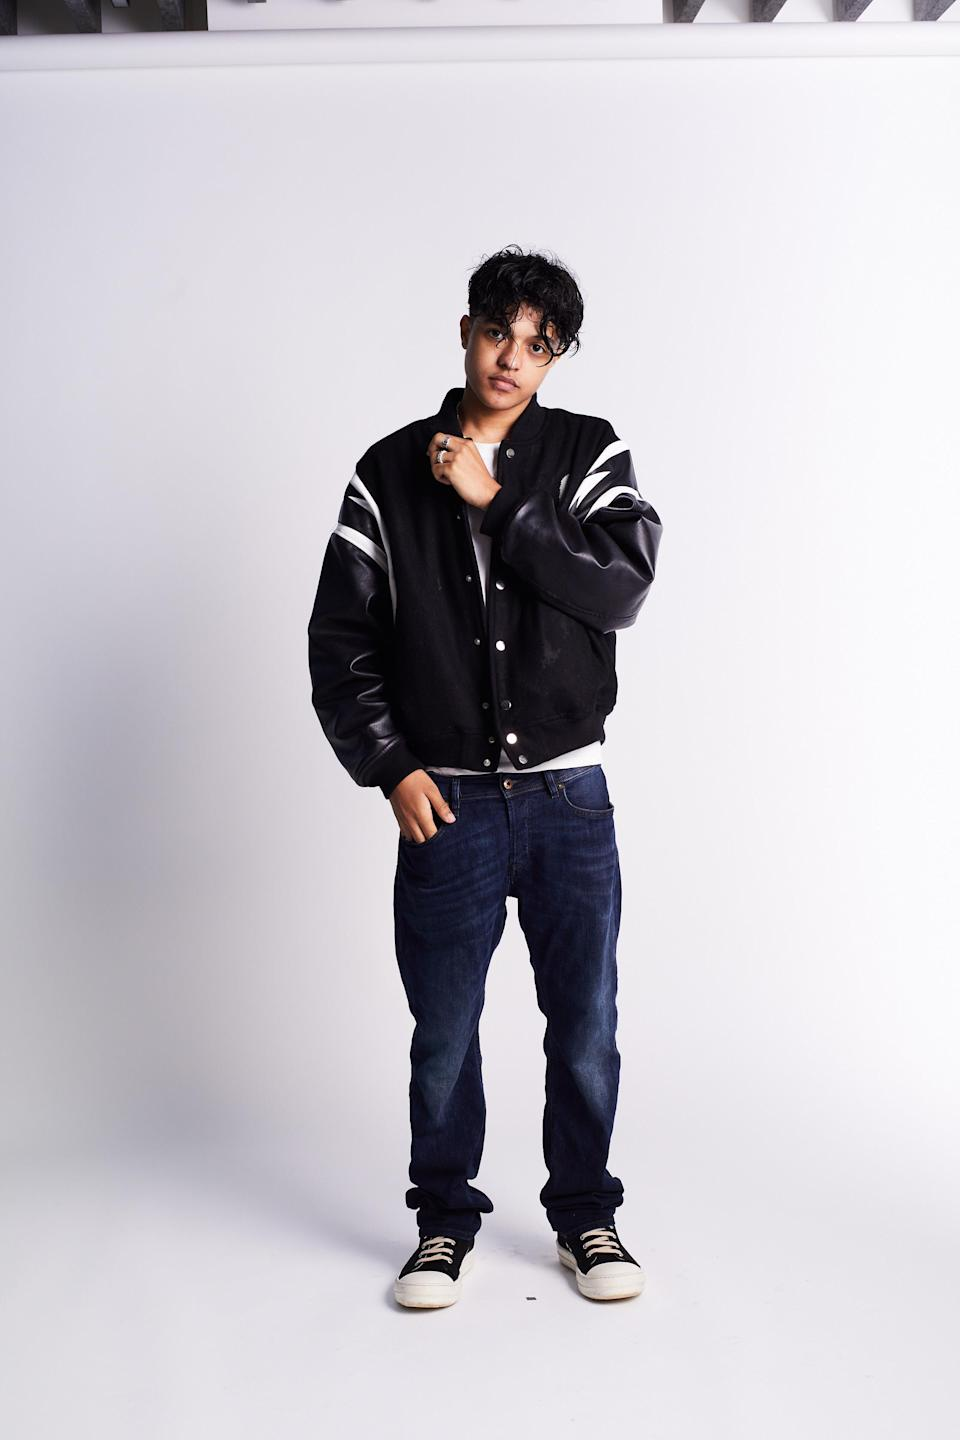 Kamal. has previously featured on the multi-award winning rapper Dave's track Mercury (The Ivor Academy)